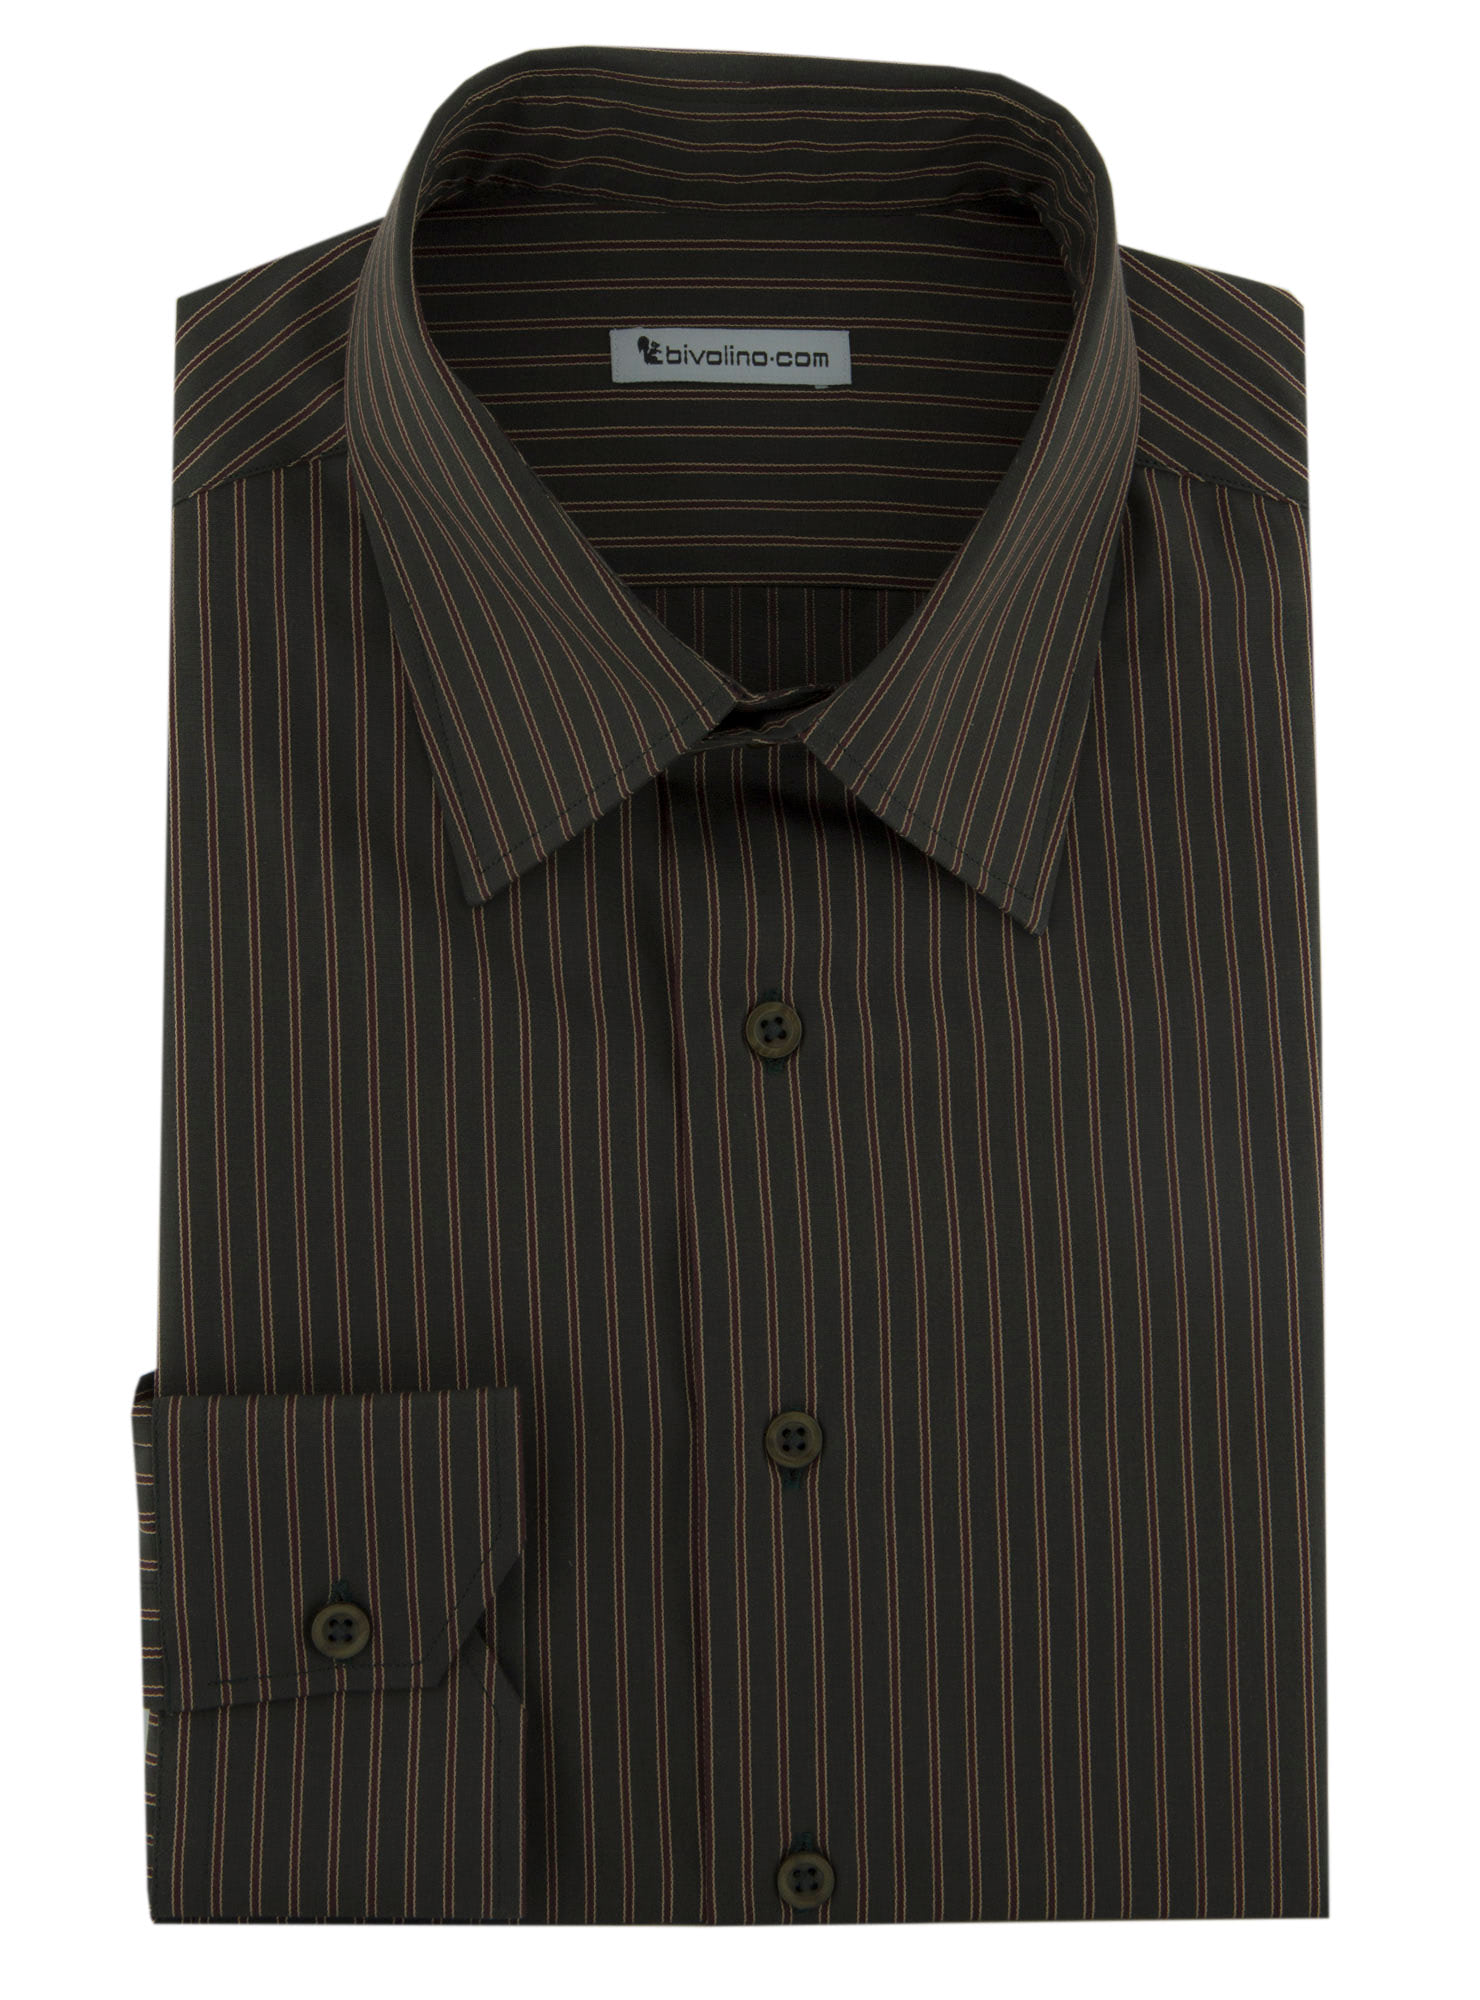 EDOLO - Poplin shirt striped green-bordeaux  - CIFRA 6